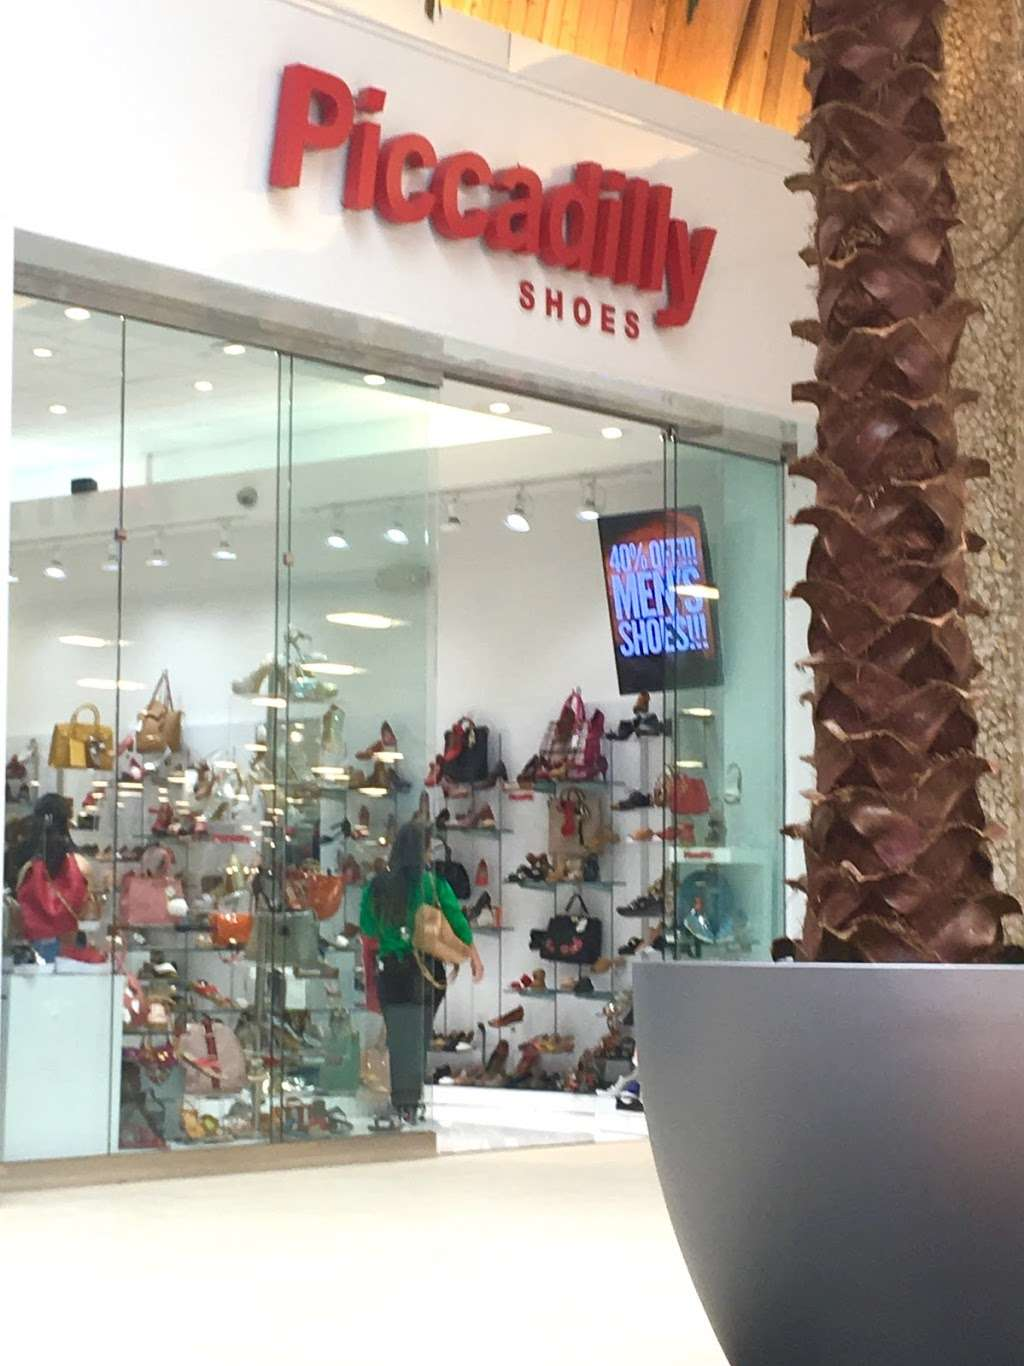 ISHOES STORE AT WESTLAND MALL, PICCADILLY AND BEIRA RIO SHOES - shoe store  | Photo 4 of 10 | Address: 1675 W 49th St, Hialeah, FL 33012, USA | Phone: (305) 819-2996